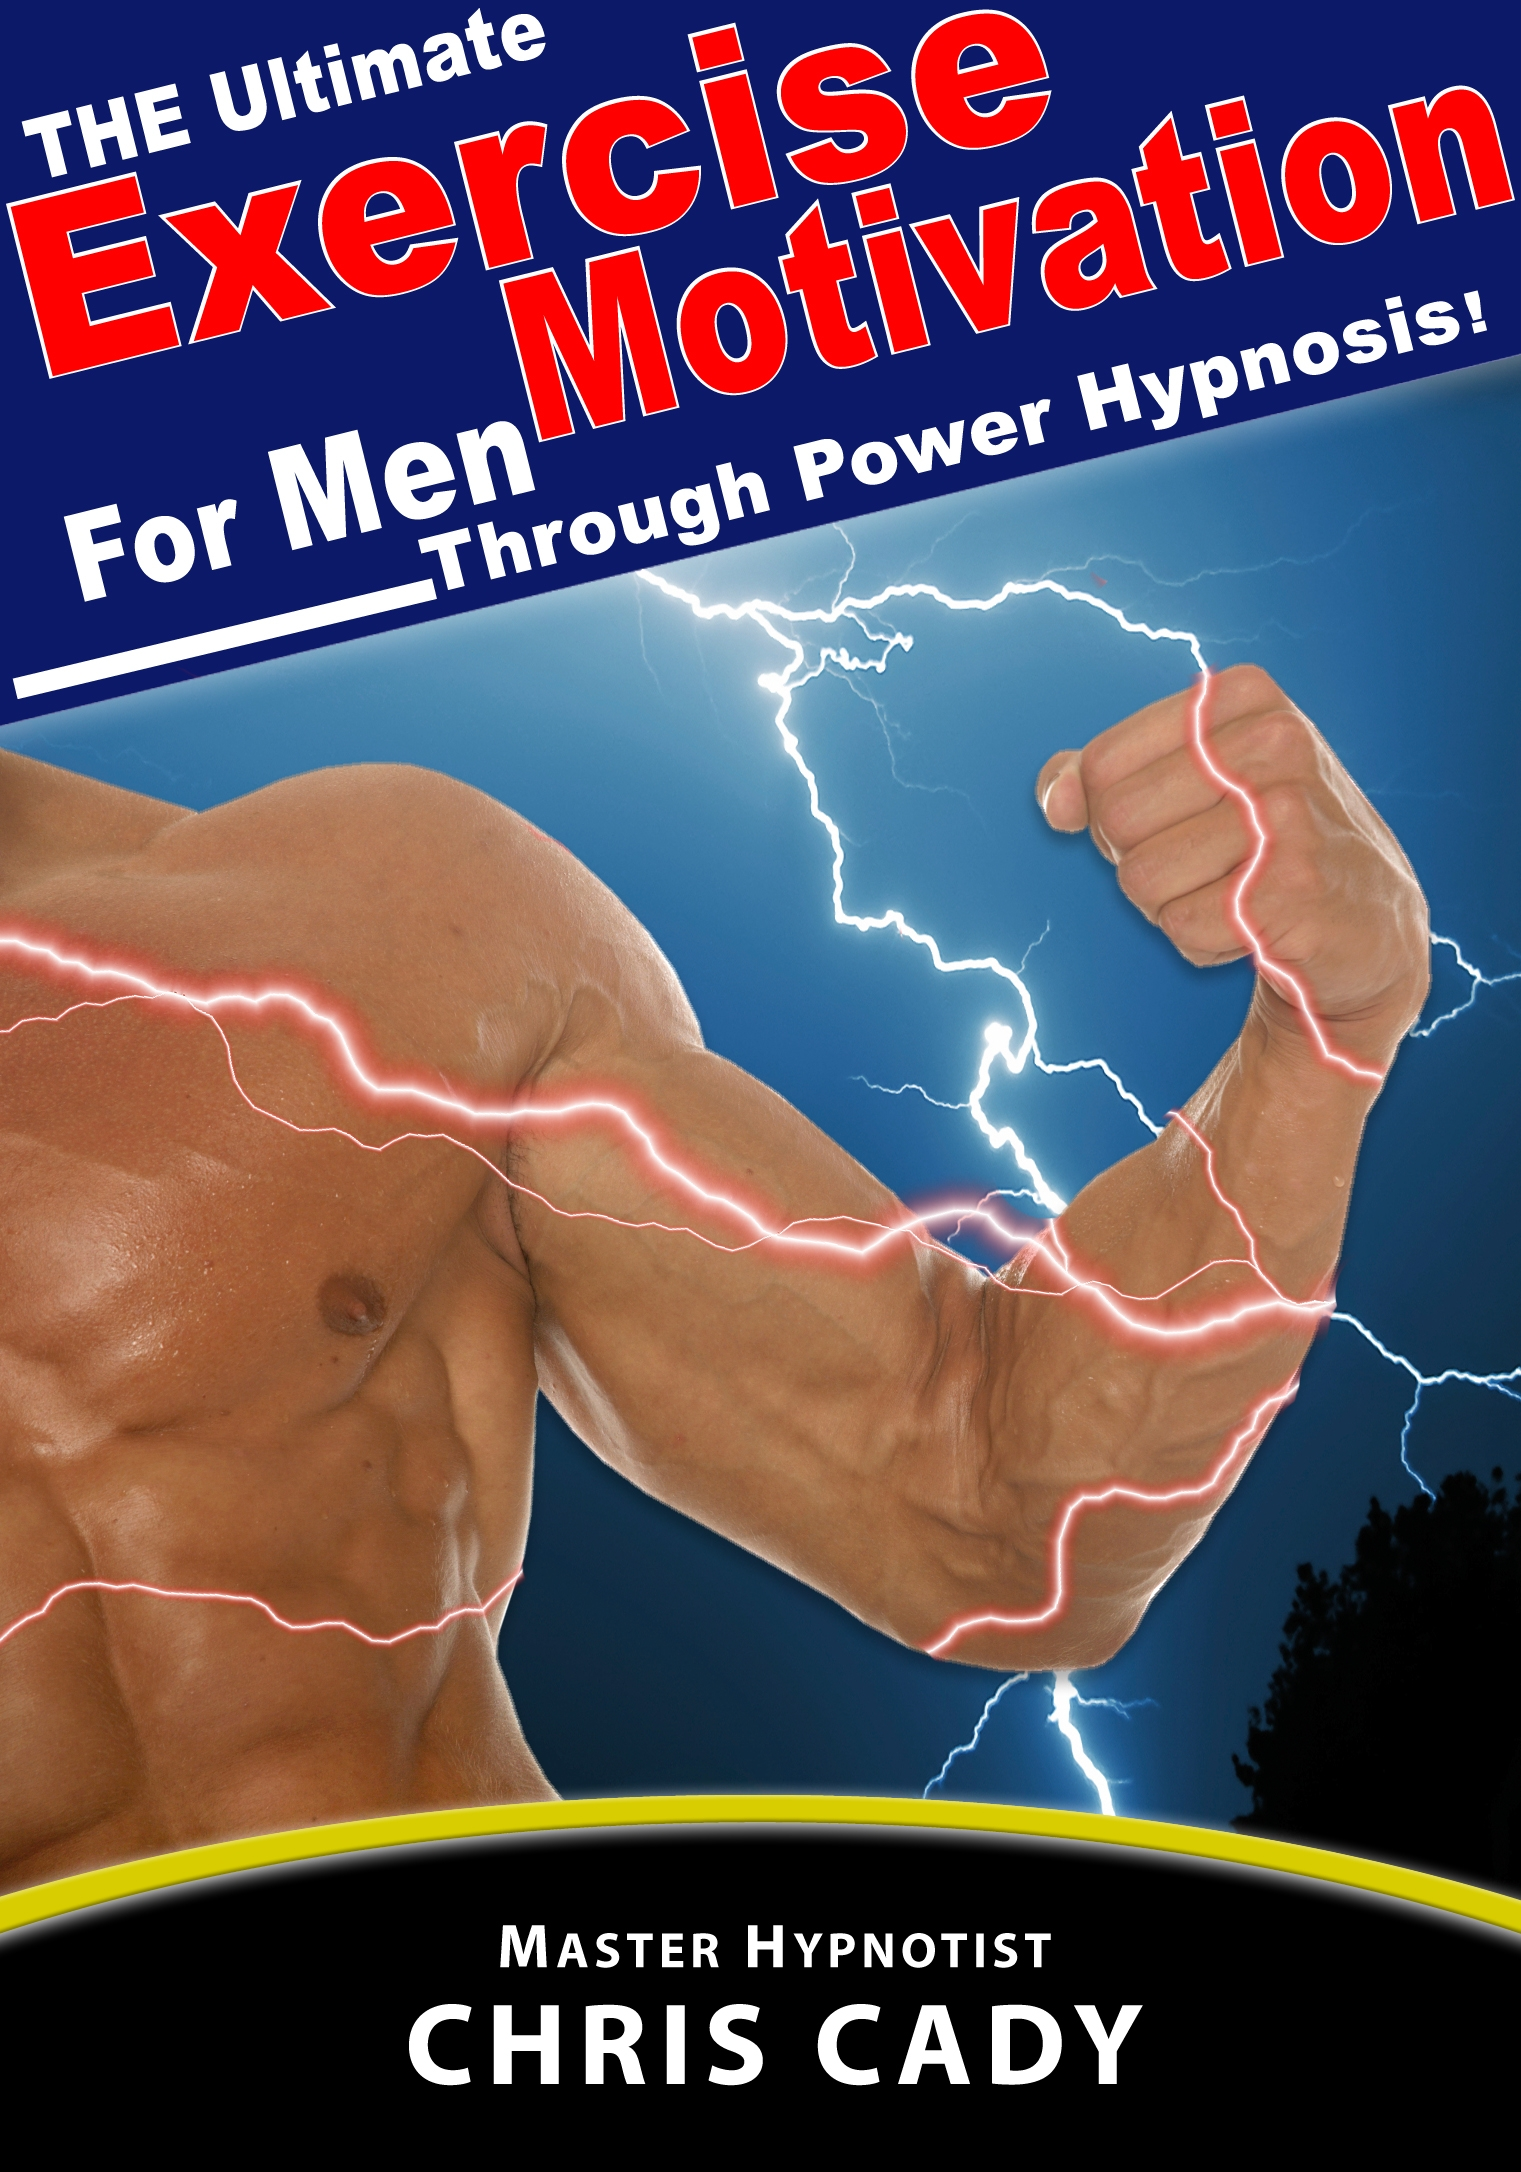 hypnosis exercise motivation cd for men